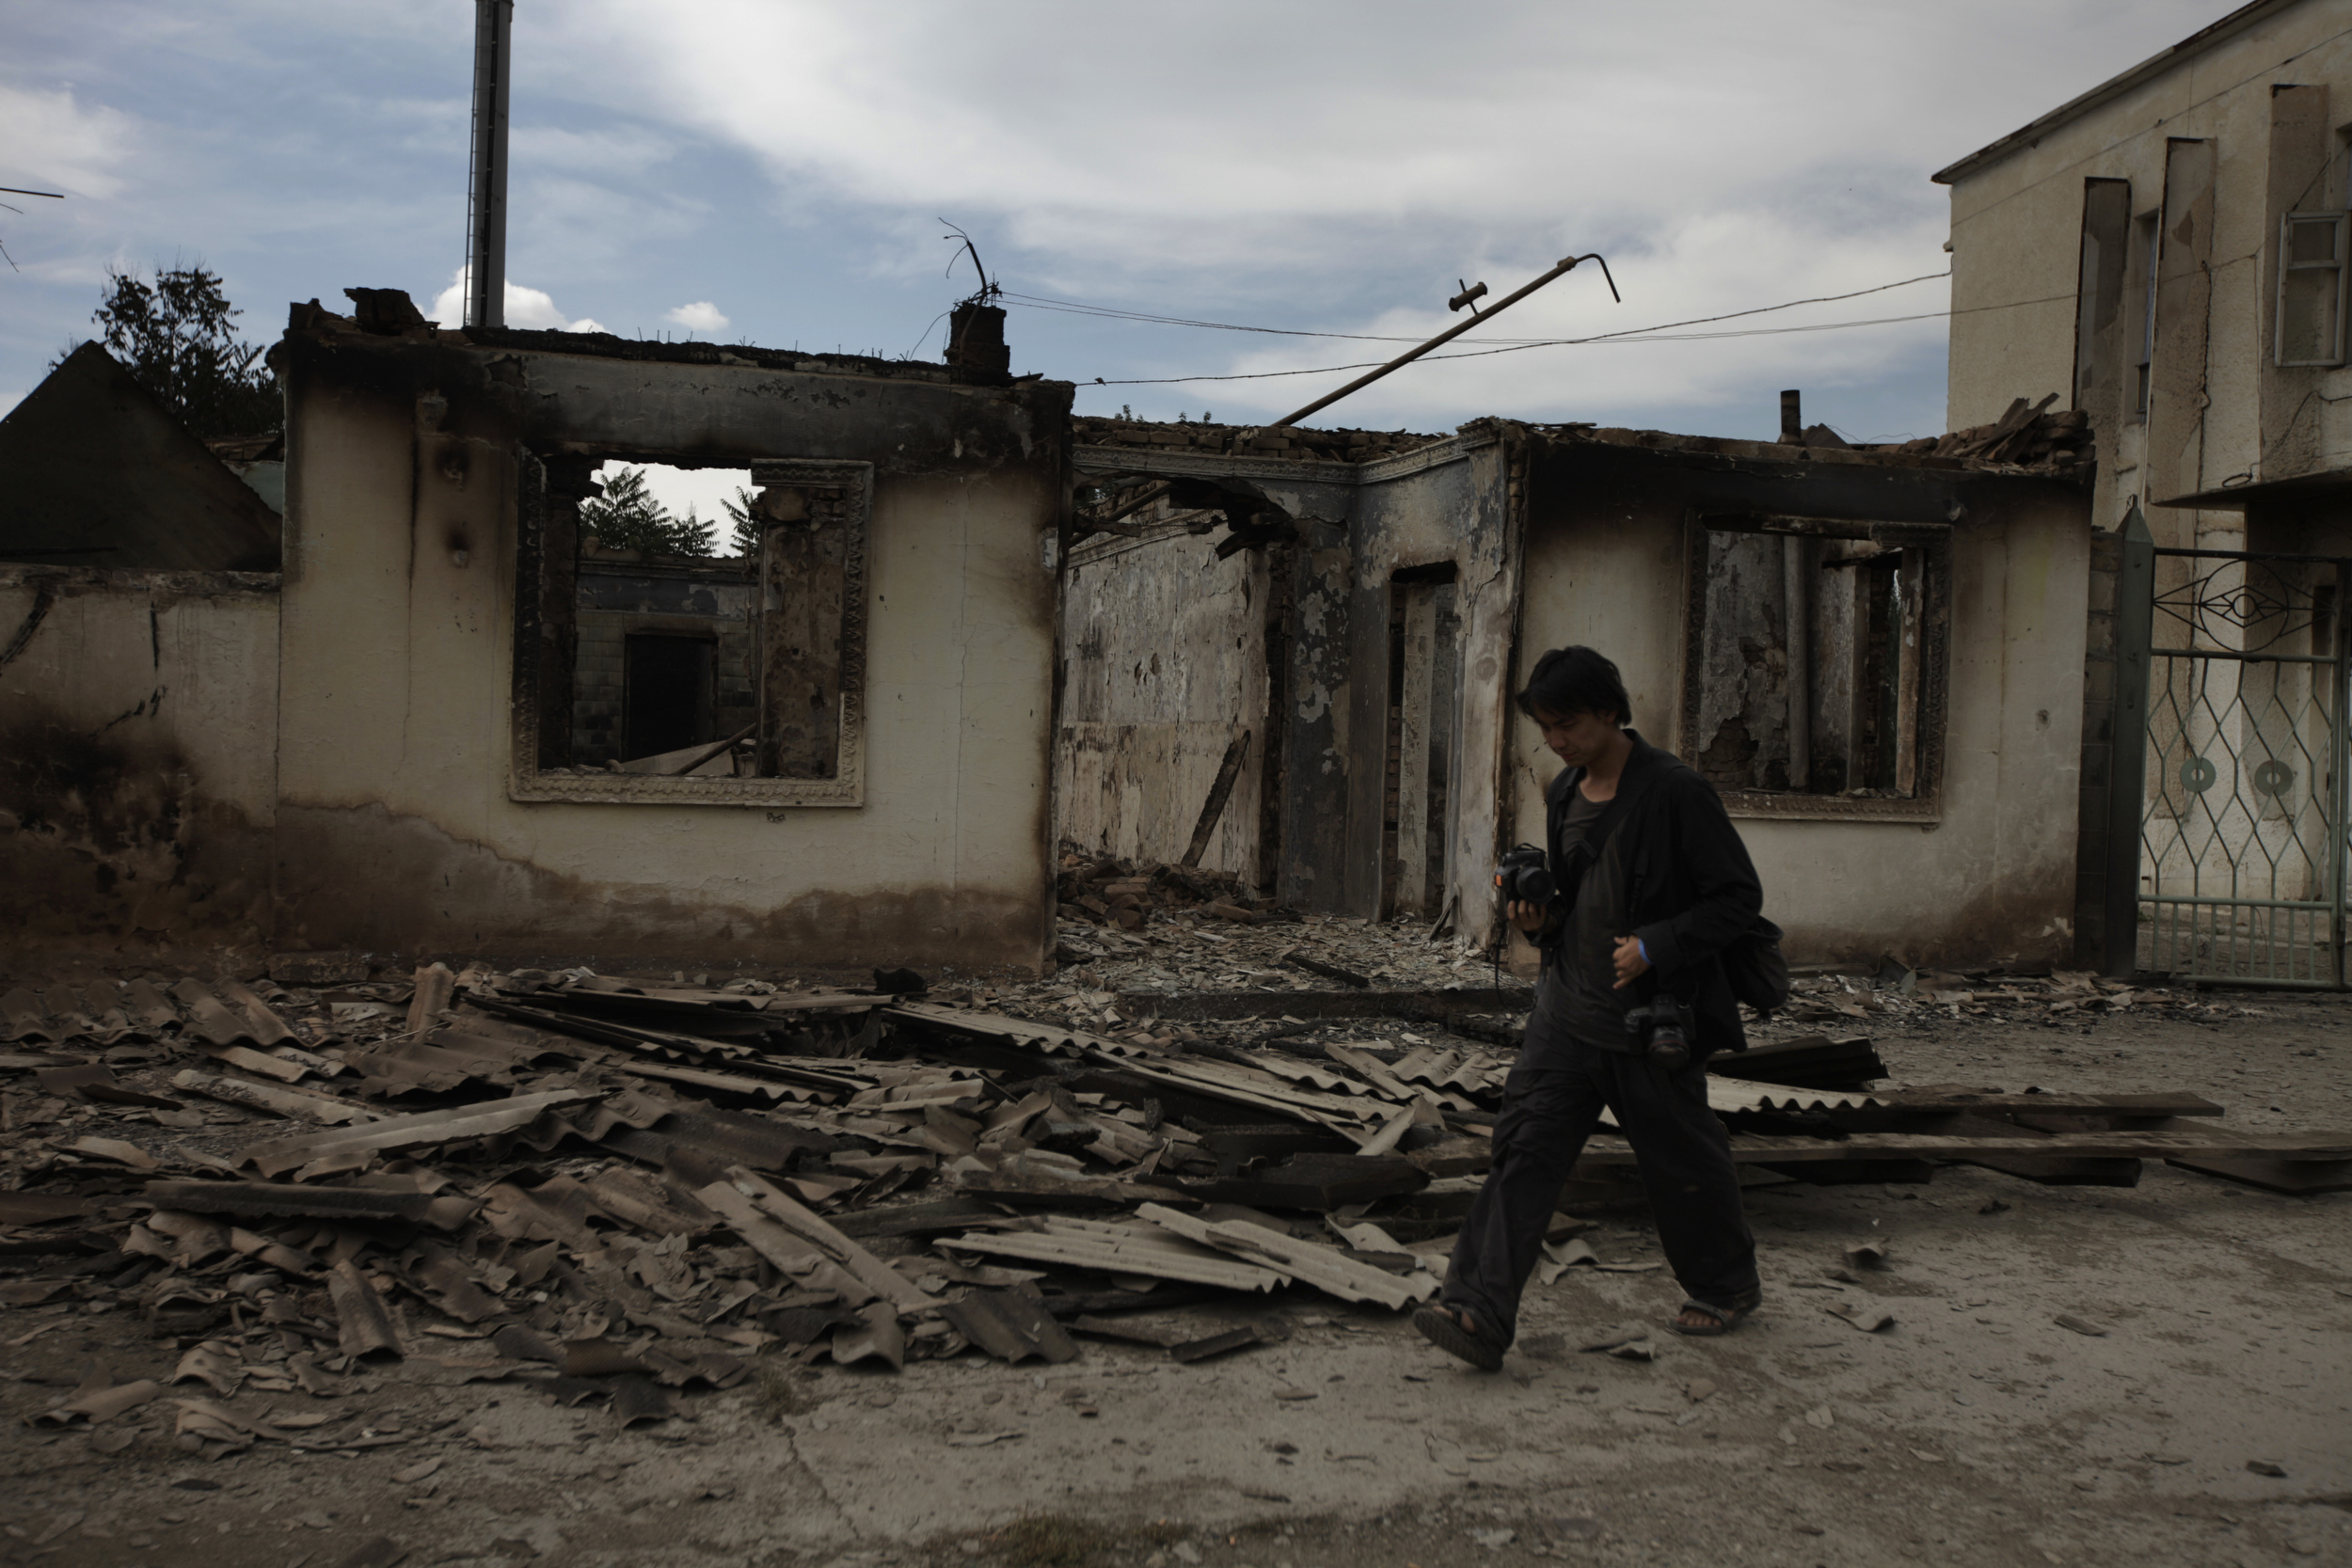 Ed Ou photographs a burned home after ethnic Kyrgyz mobs rampaged through minority Uzbek enclaves, burning homes and businesses in Shark, Kyrgyzstan.